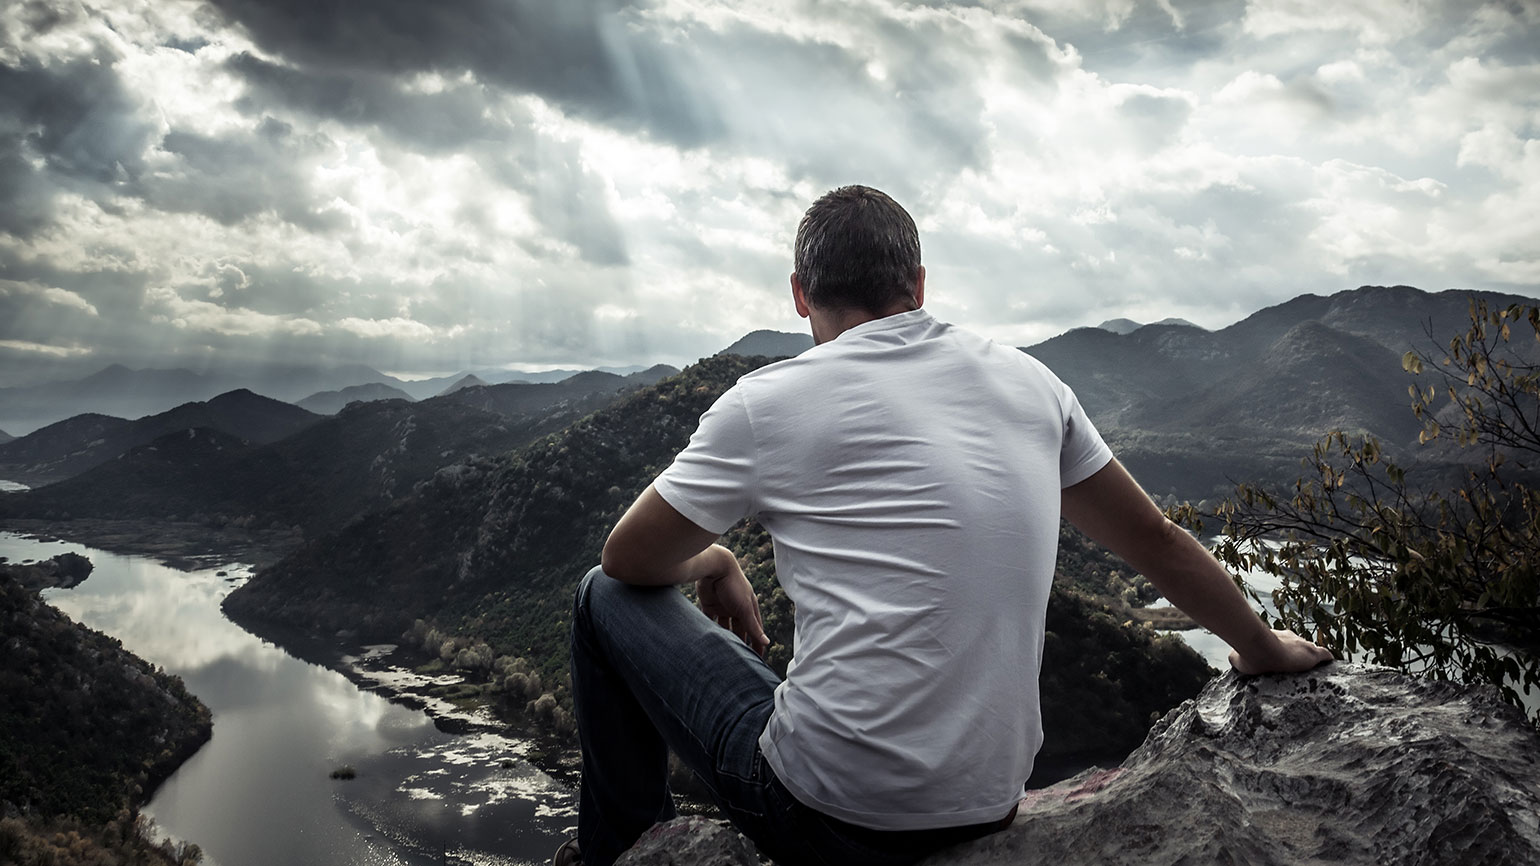 A man gazes out at sunbeams shining down on mountains